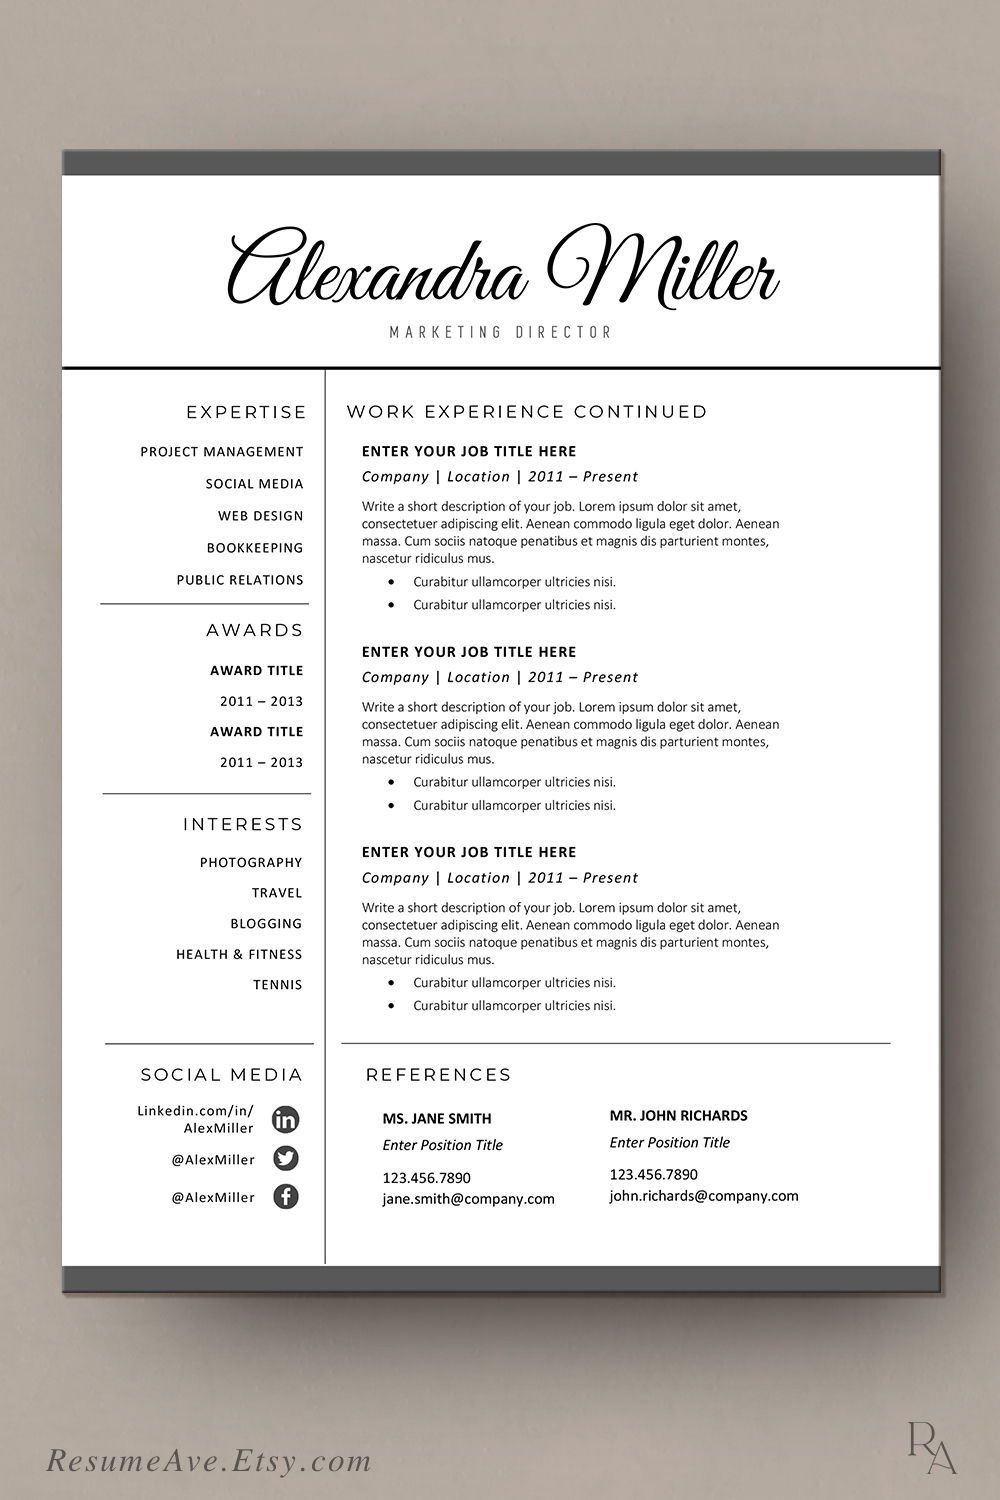 Resume template word document with script calligraphy name